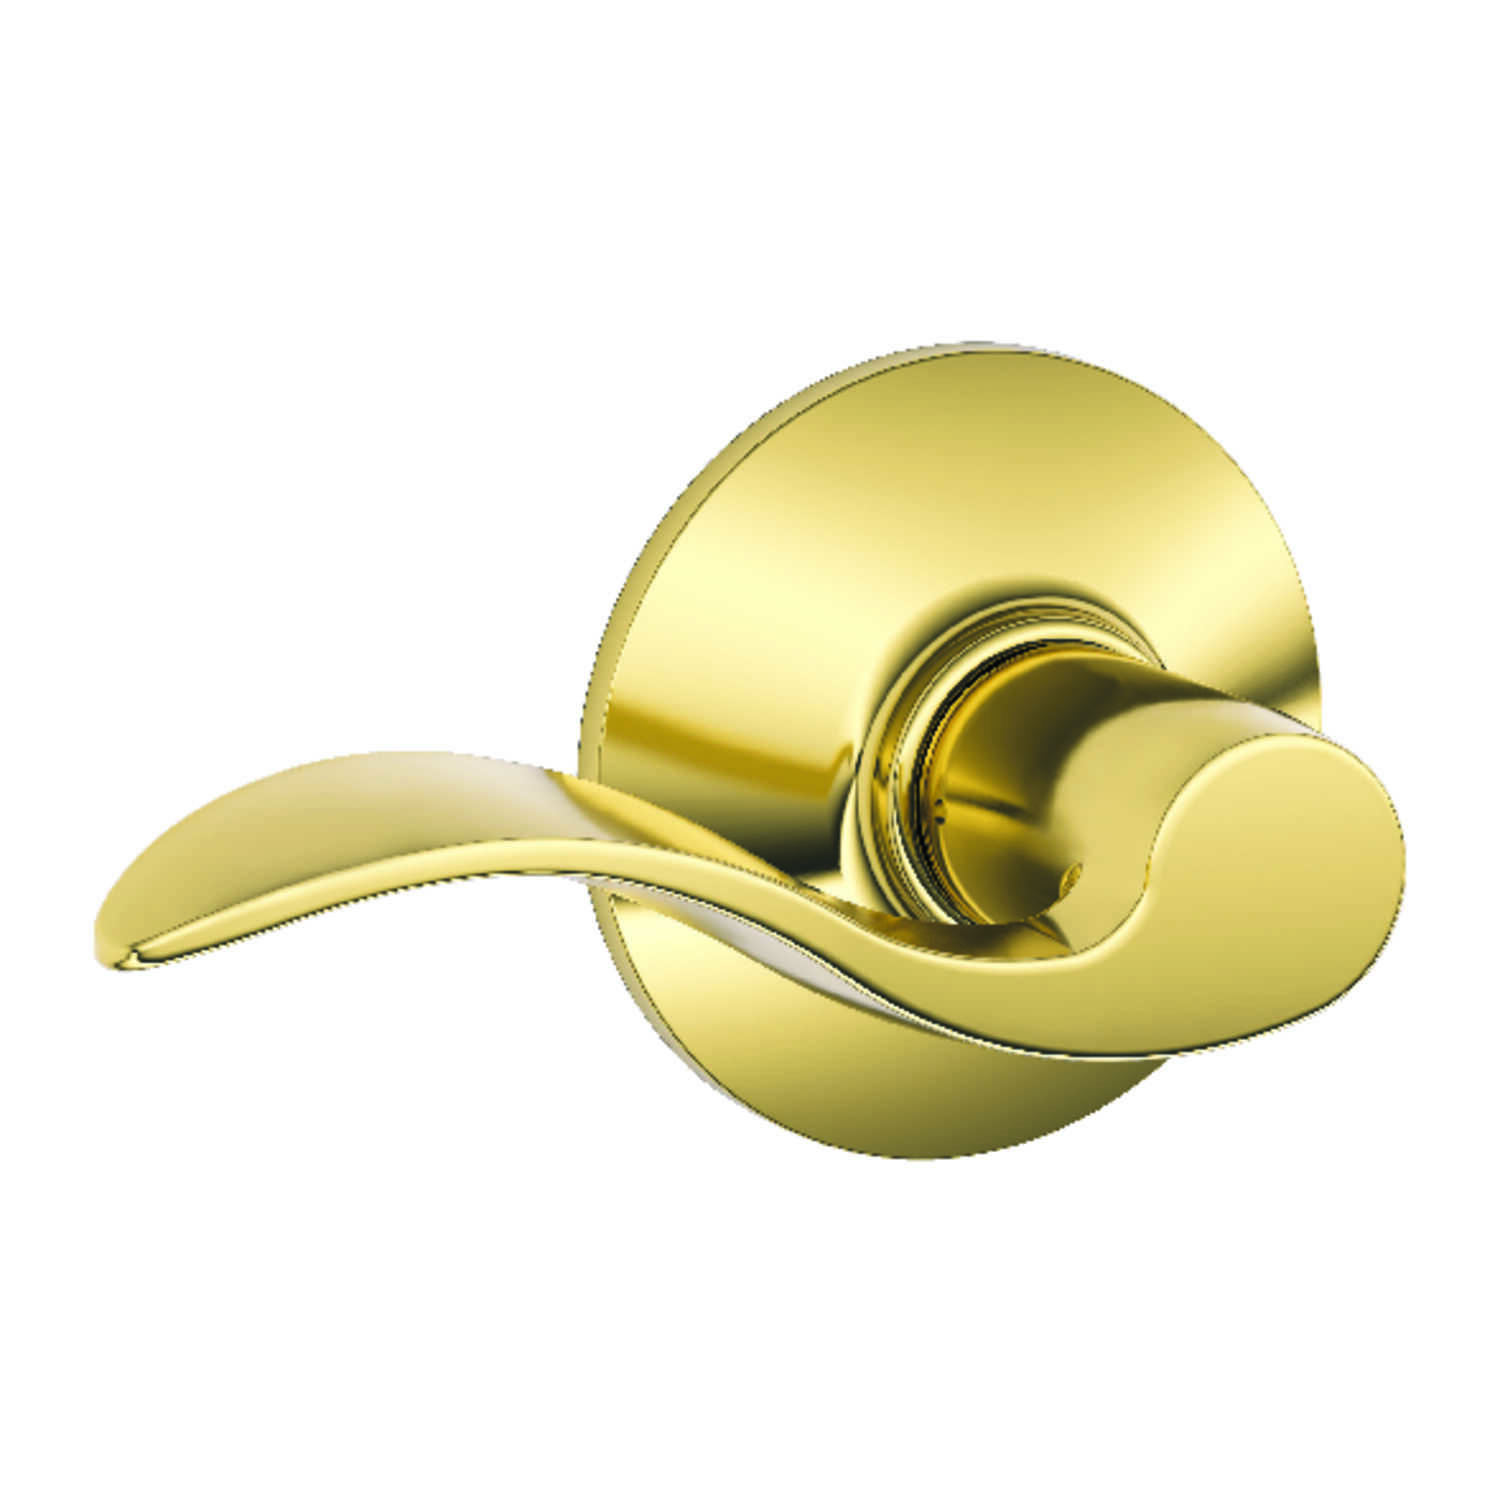 Schlage  Accent  Bright Brass  Steel  Passage Lockset  ANSI Grade 2  1-3/4 in.